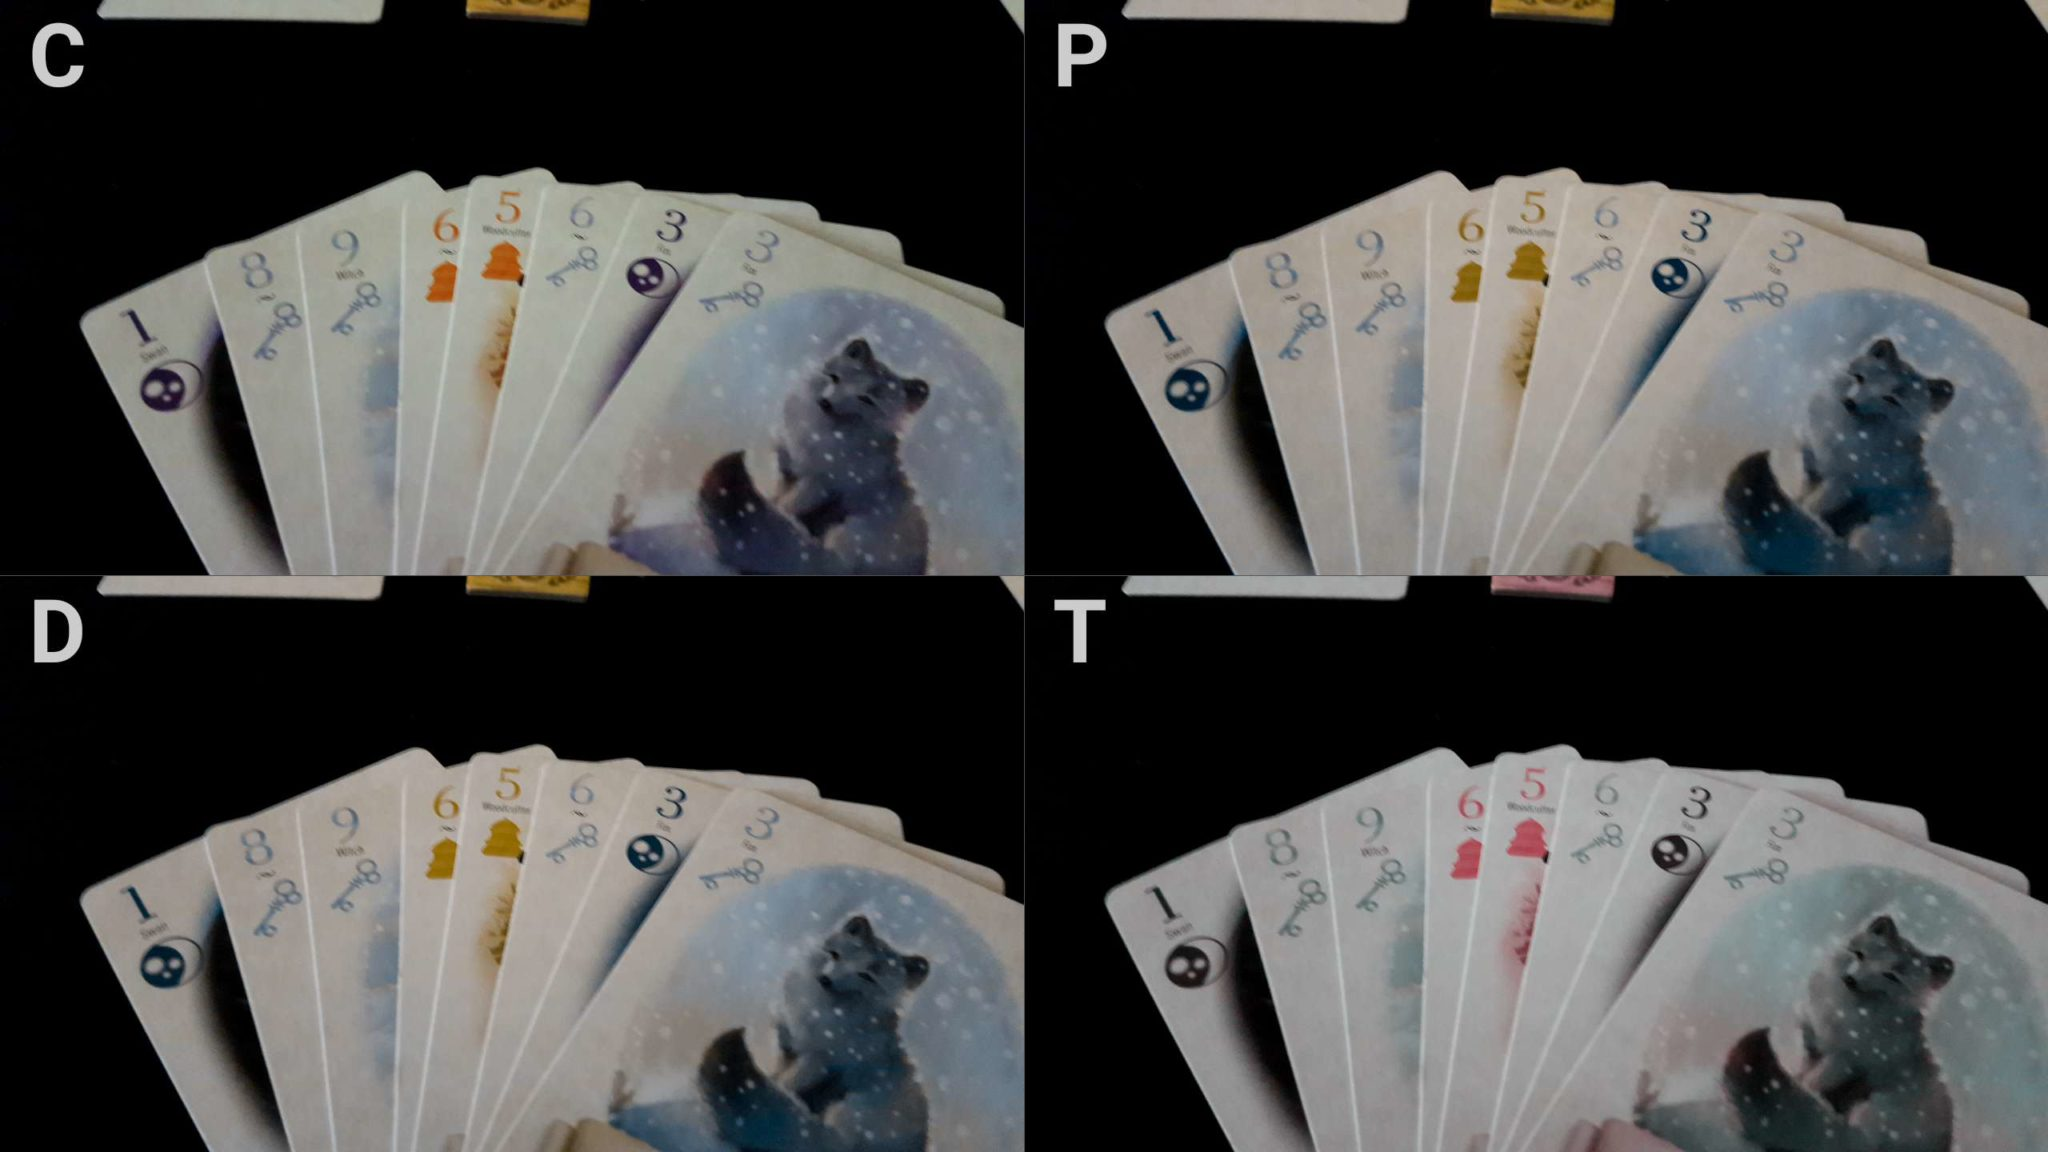 Colour blindness and cards